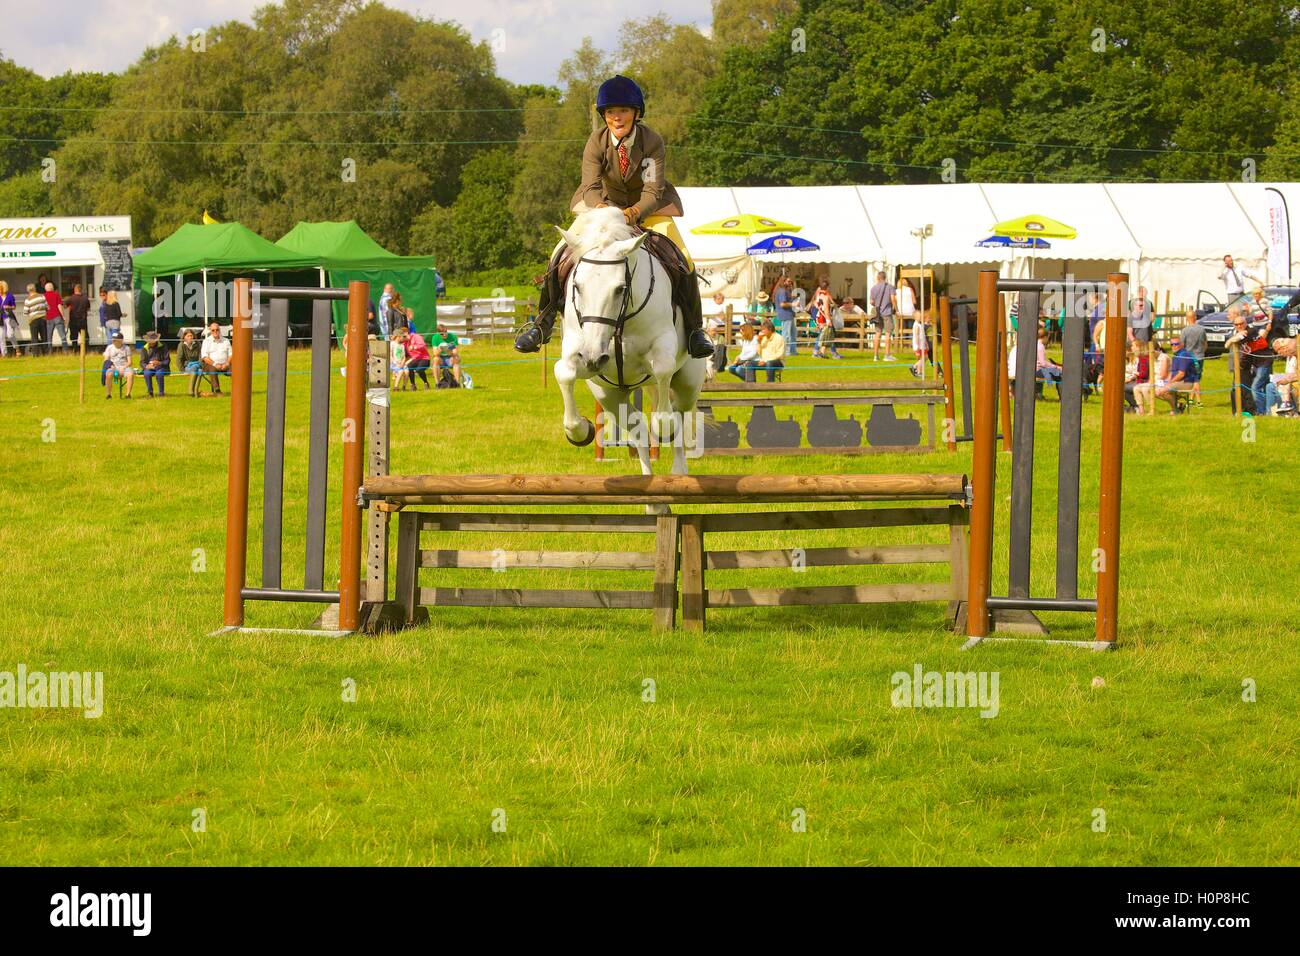 Girl riding a horse show jumping a fence. Bellingham Show and Country Festival, Bellingham, Northumberland, England, - Stock Image